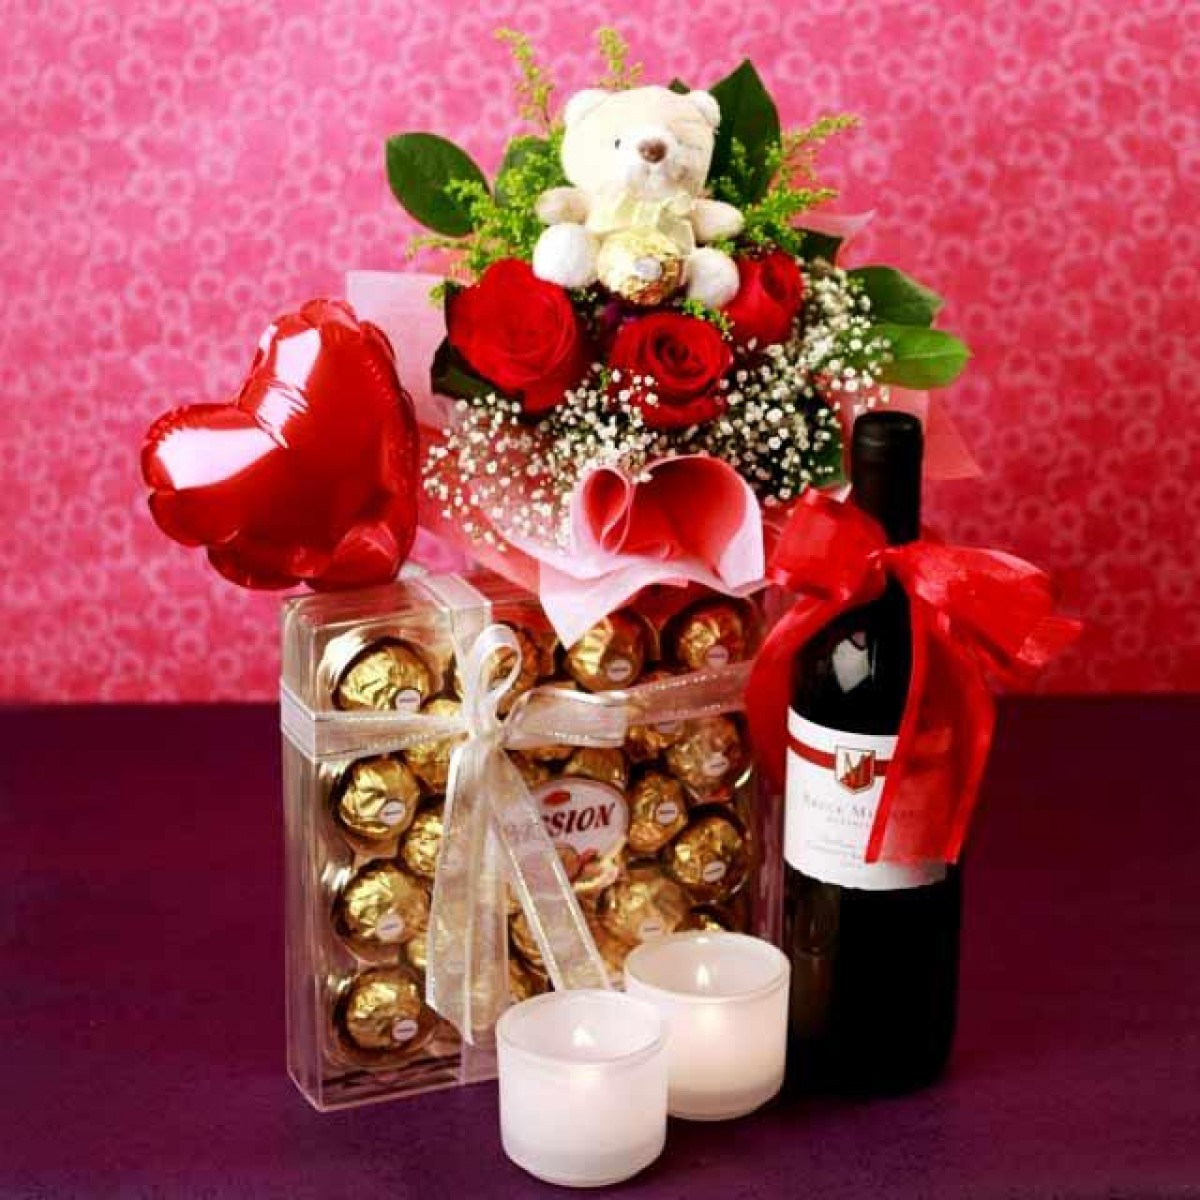 wine birthday gift delivery ; attraction_of_love